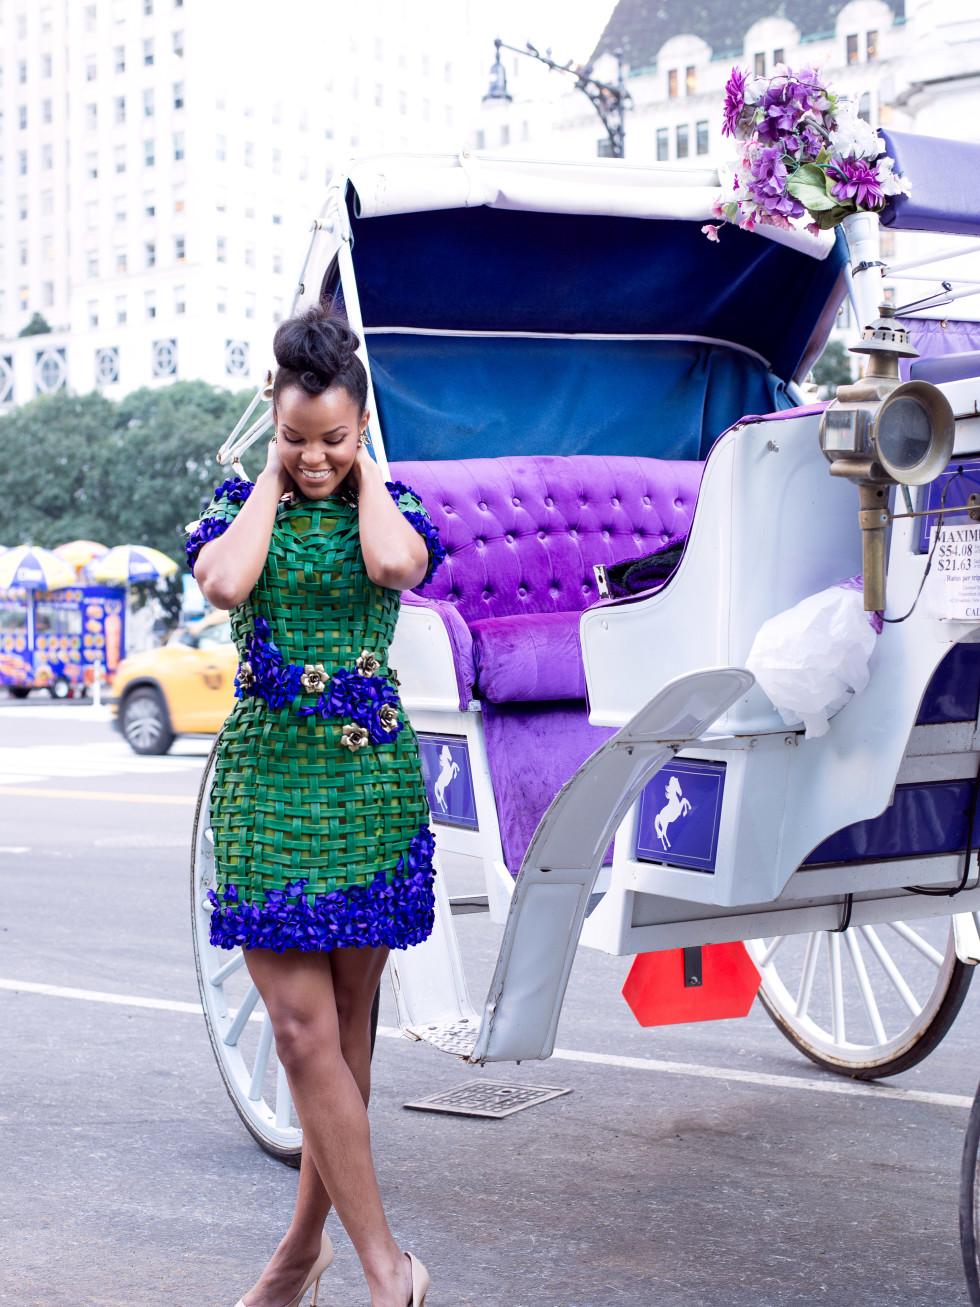 Chasity Sereal floral outfit on streets of New York